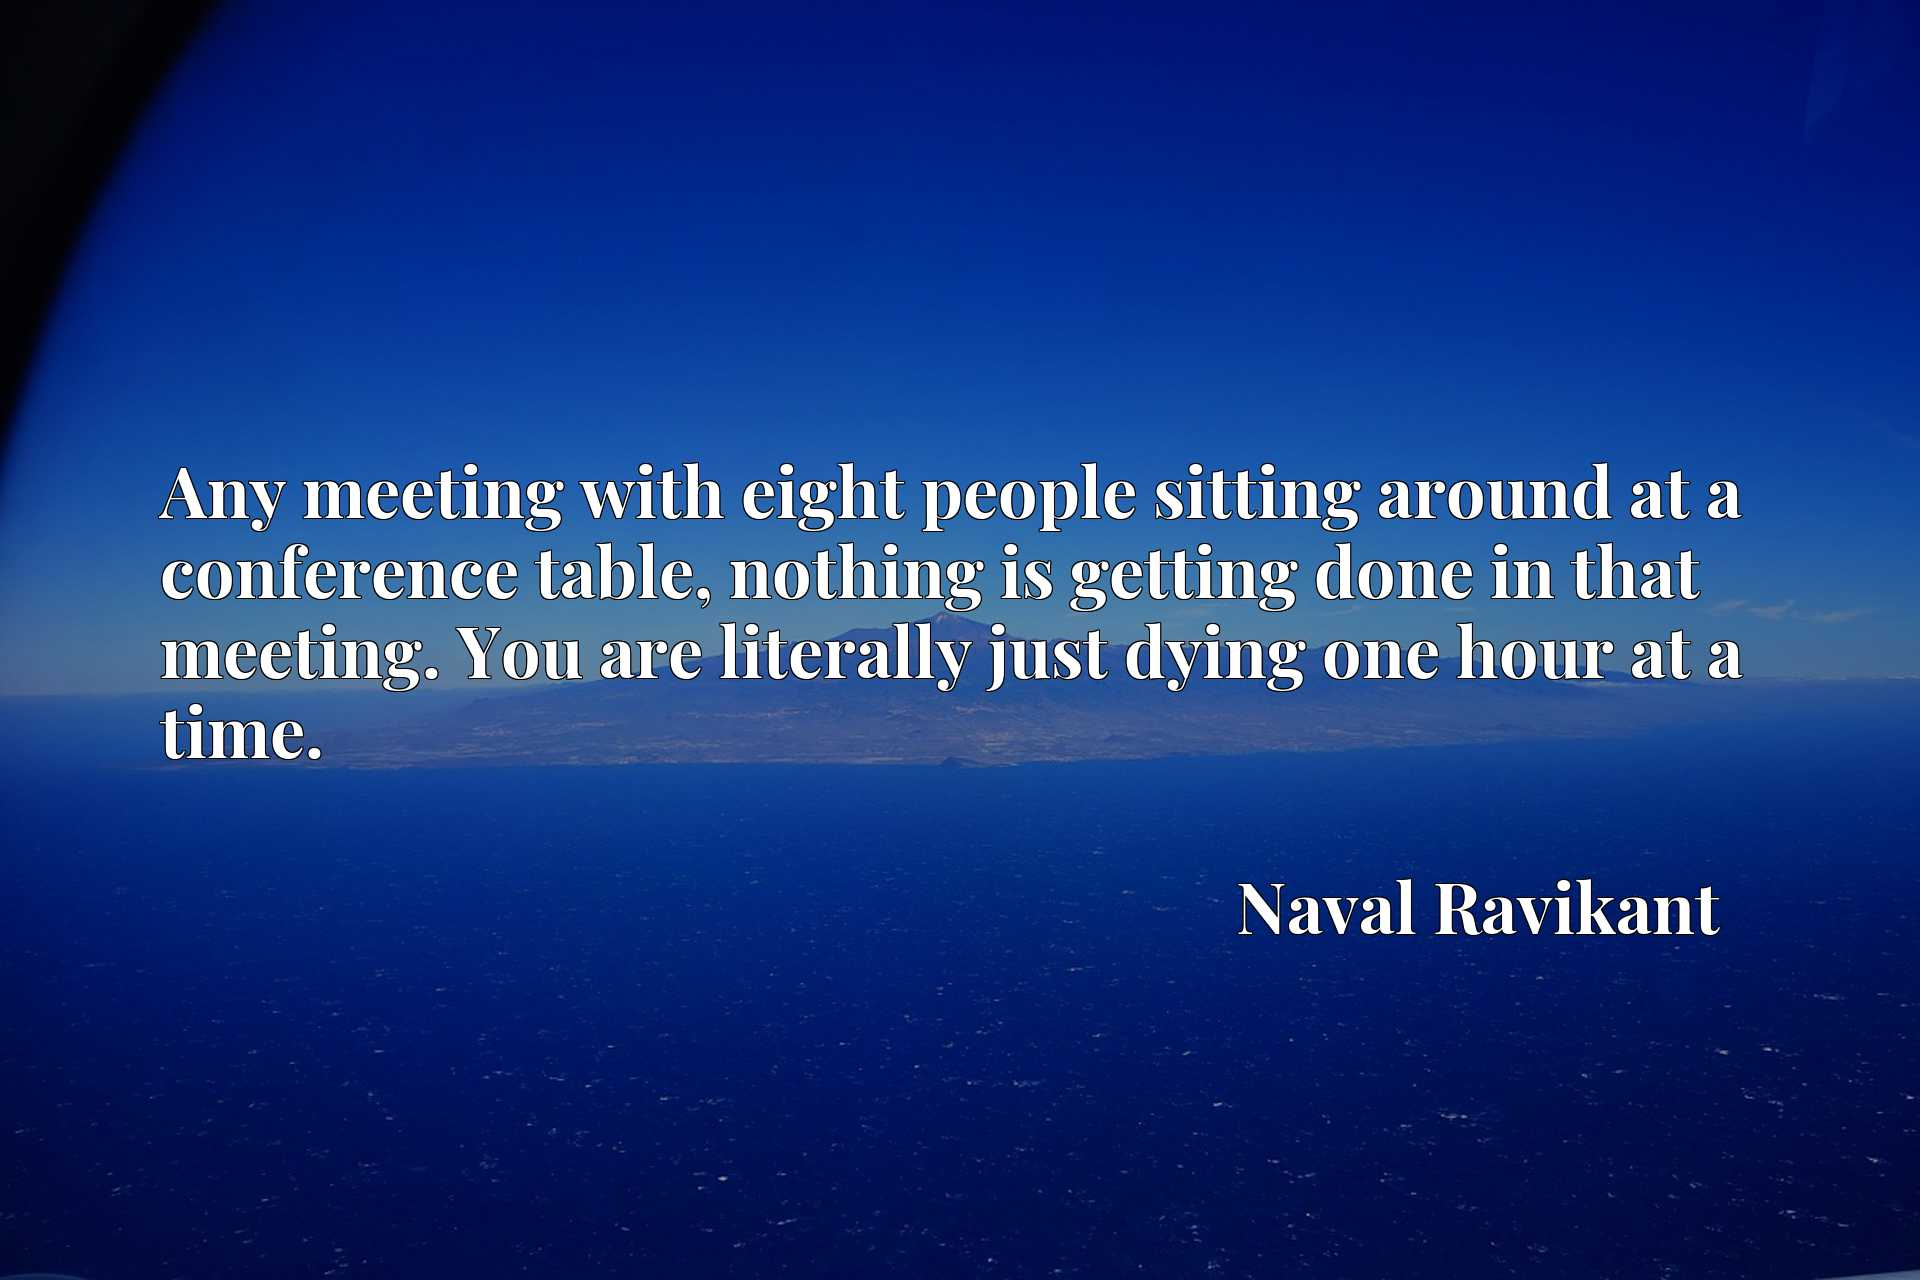 Any meeting with eight people sitting around at a conference table, nothing is getting done in that meeting. You are literally just dying one hour at a time.